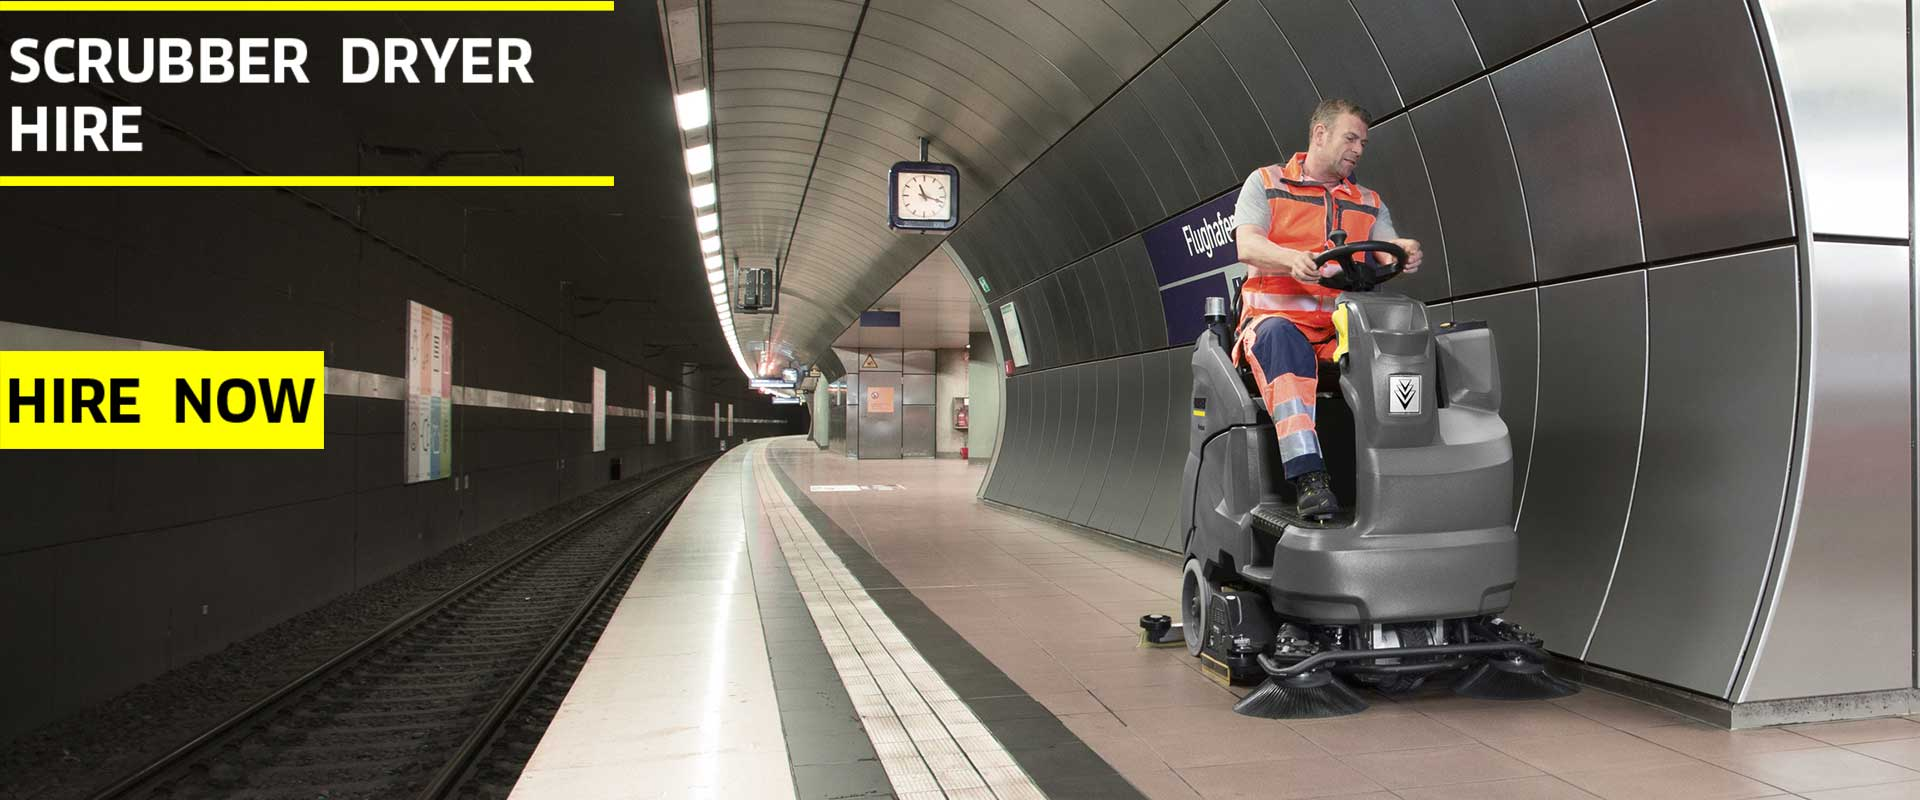 Scrubber dryer cleaning a railway station